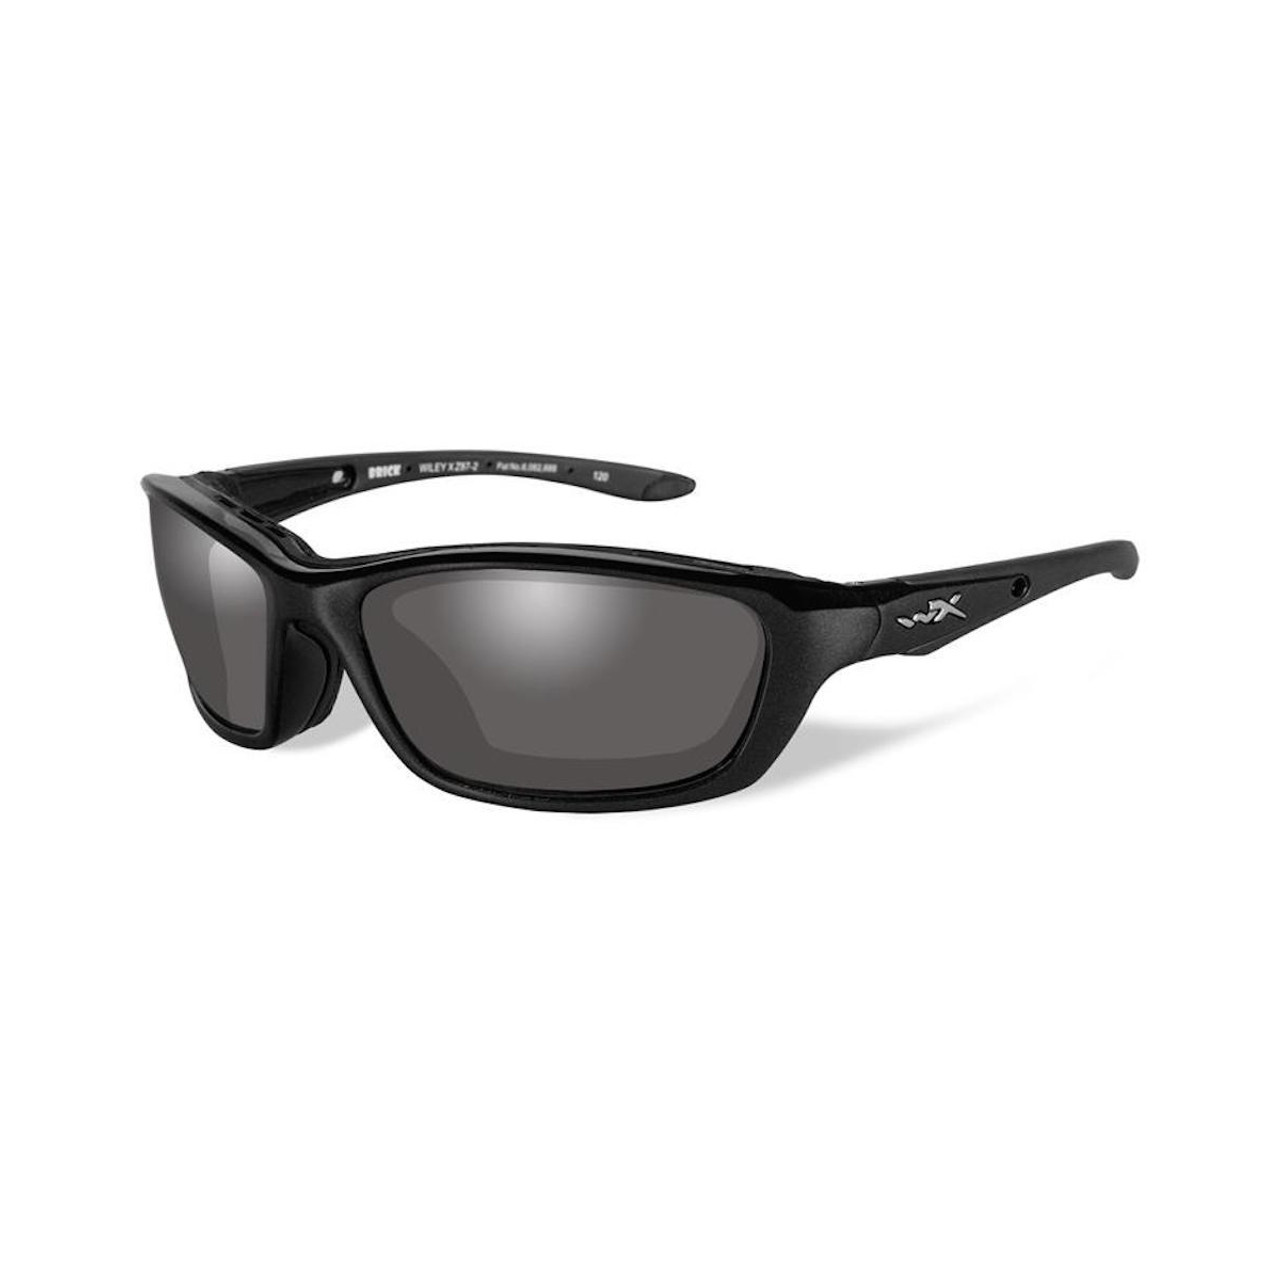 Wiley X 856 Brick Smoke Grey Lenses Gloss Black Frame Ballistic Sunglasses 7058ccb964